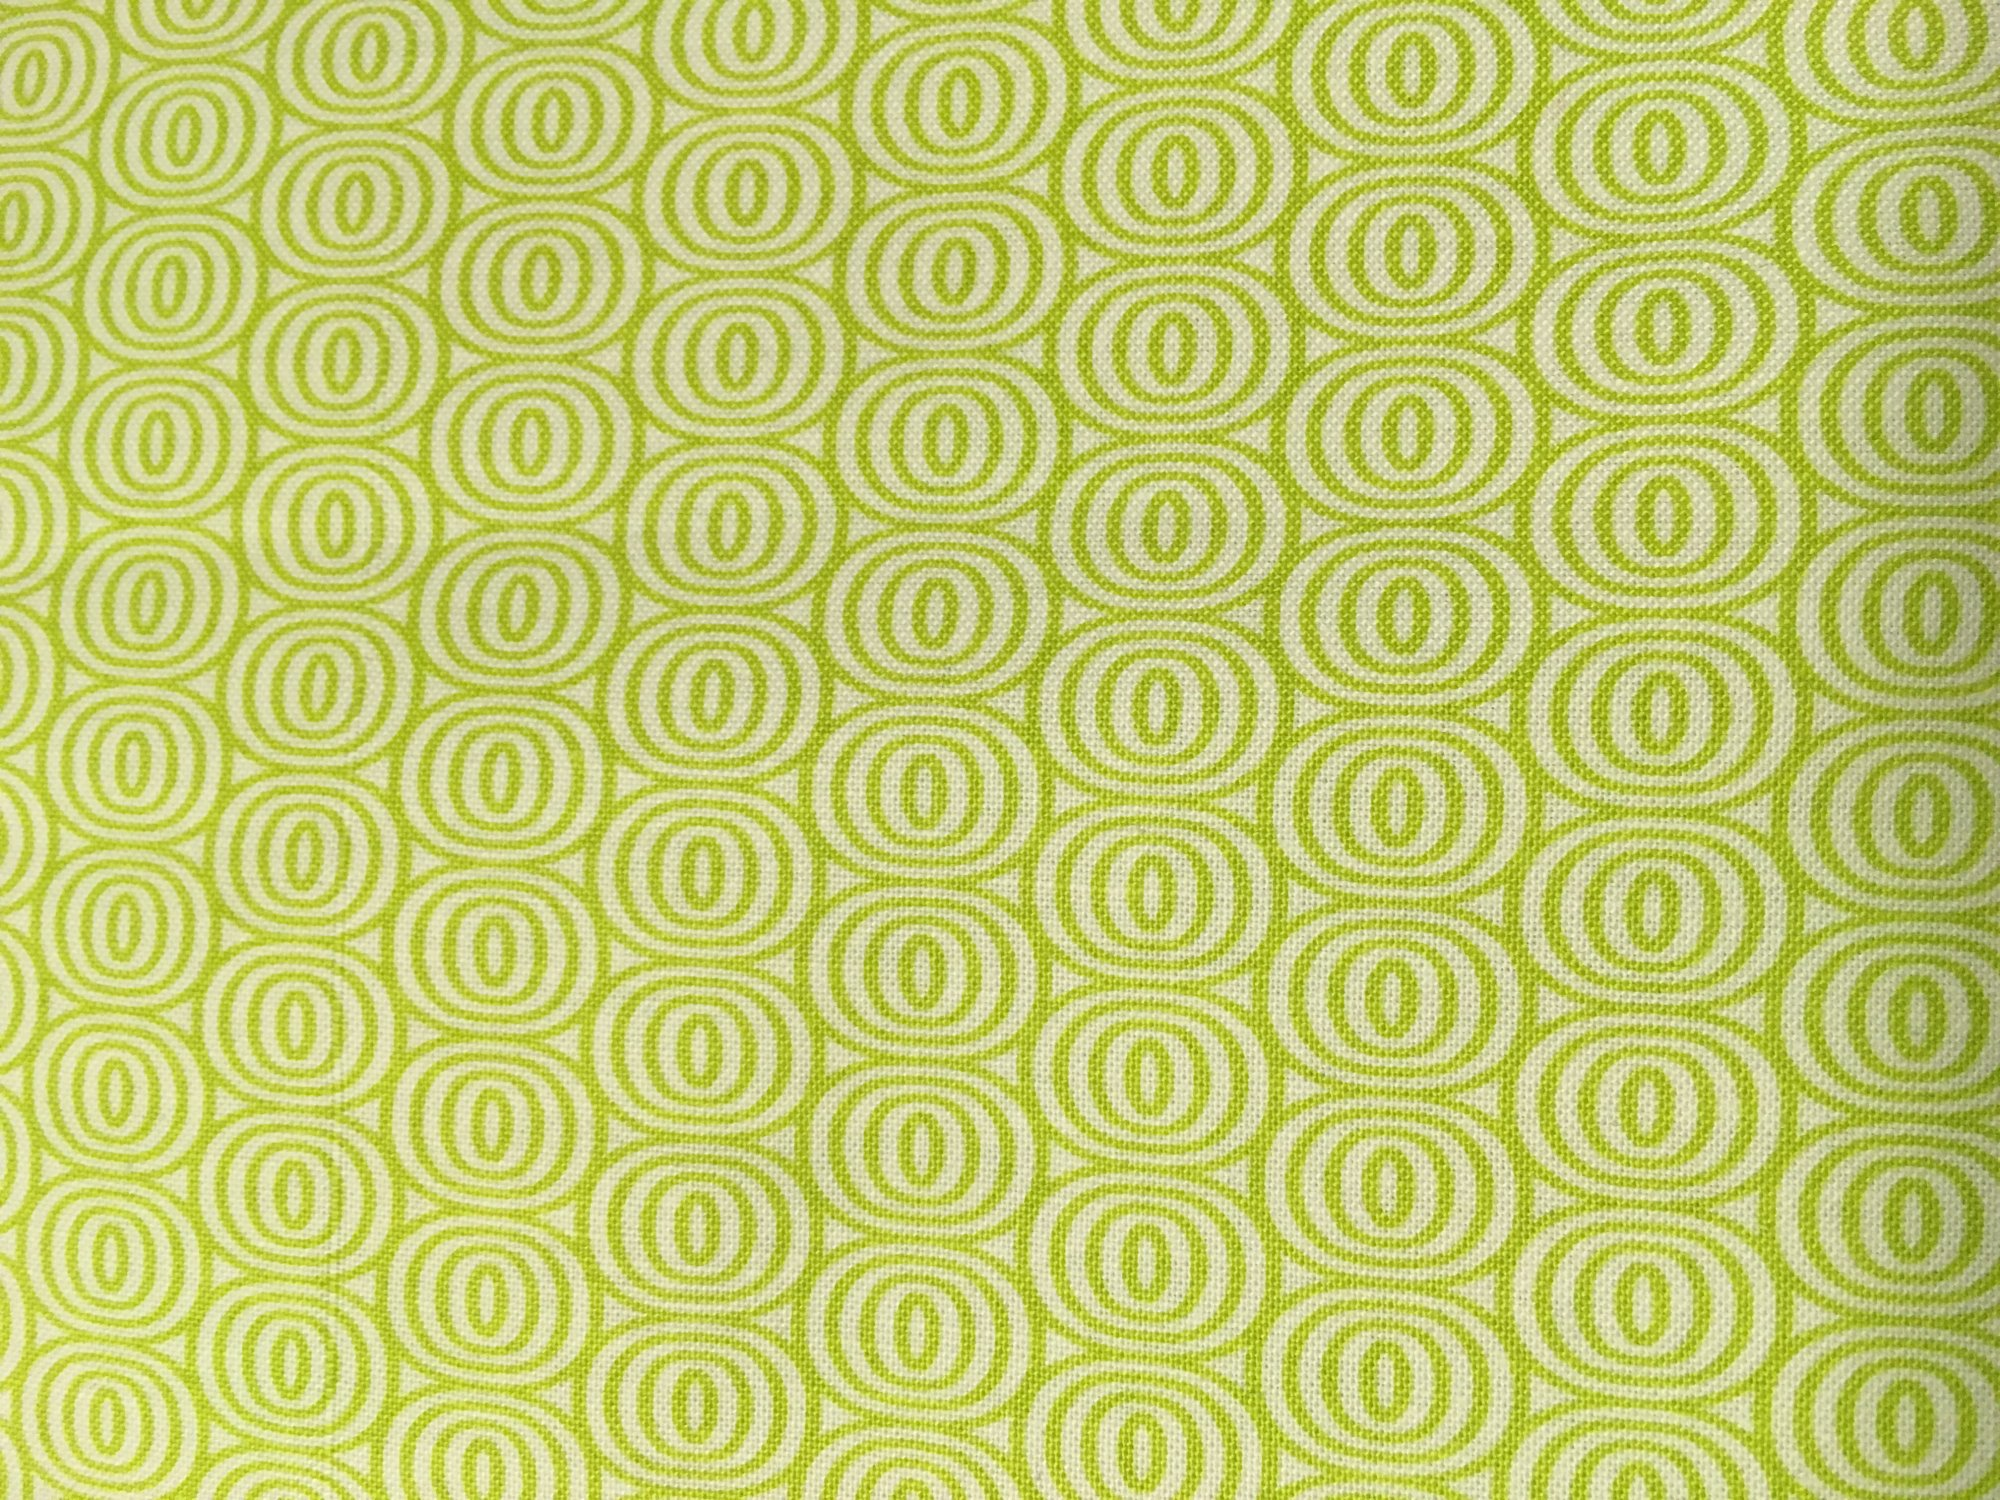 Citron Twist Green with White Circles